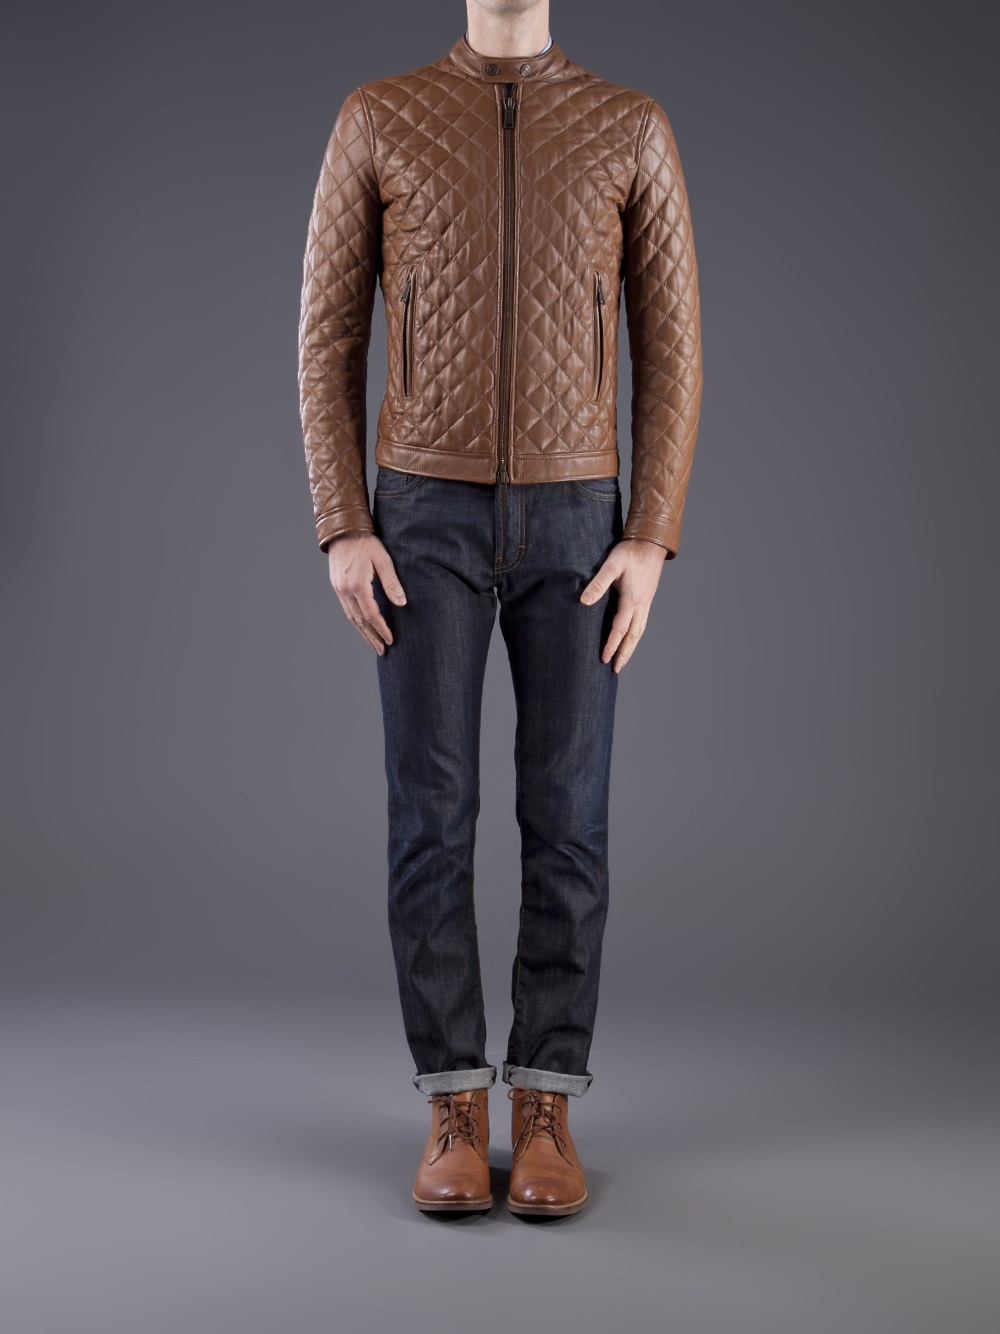 Dsquared² Quilted Leather Jacket in Brown for Men | Lyst